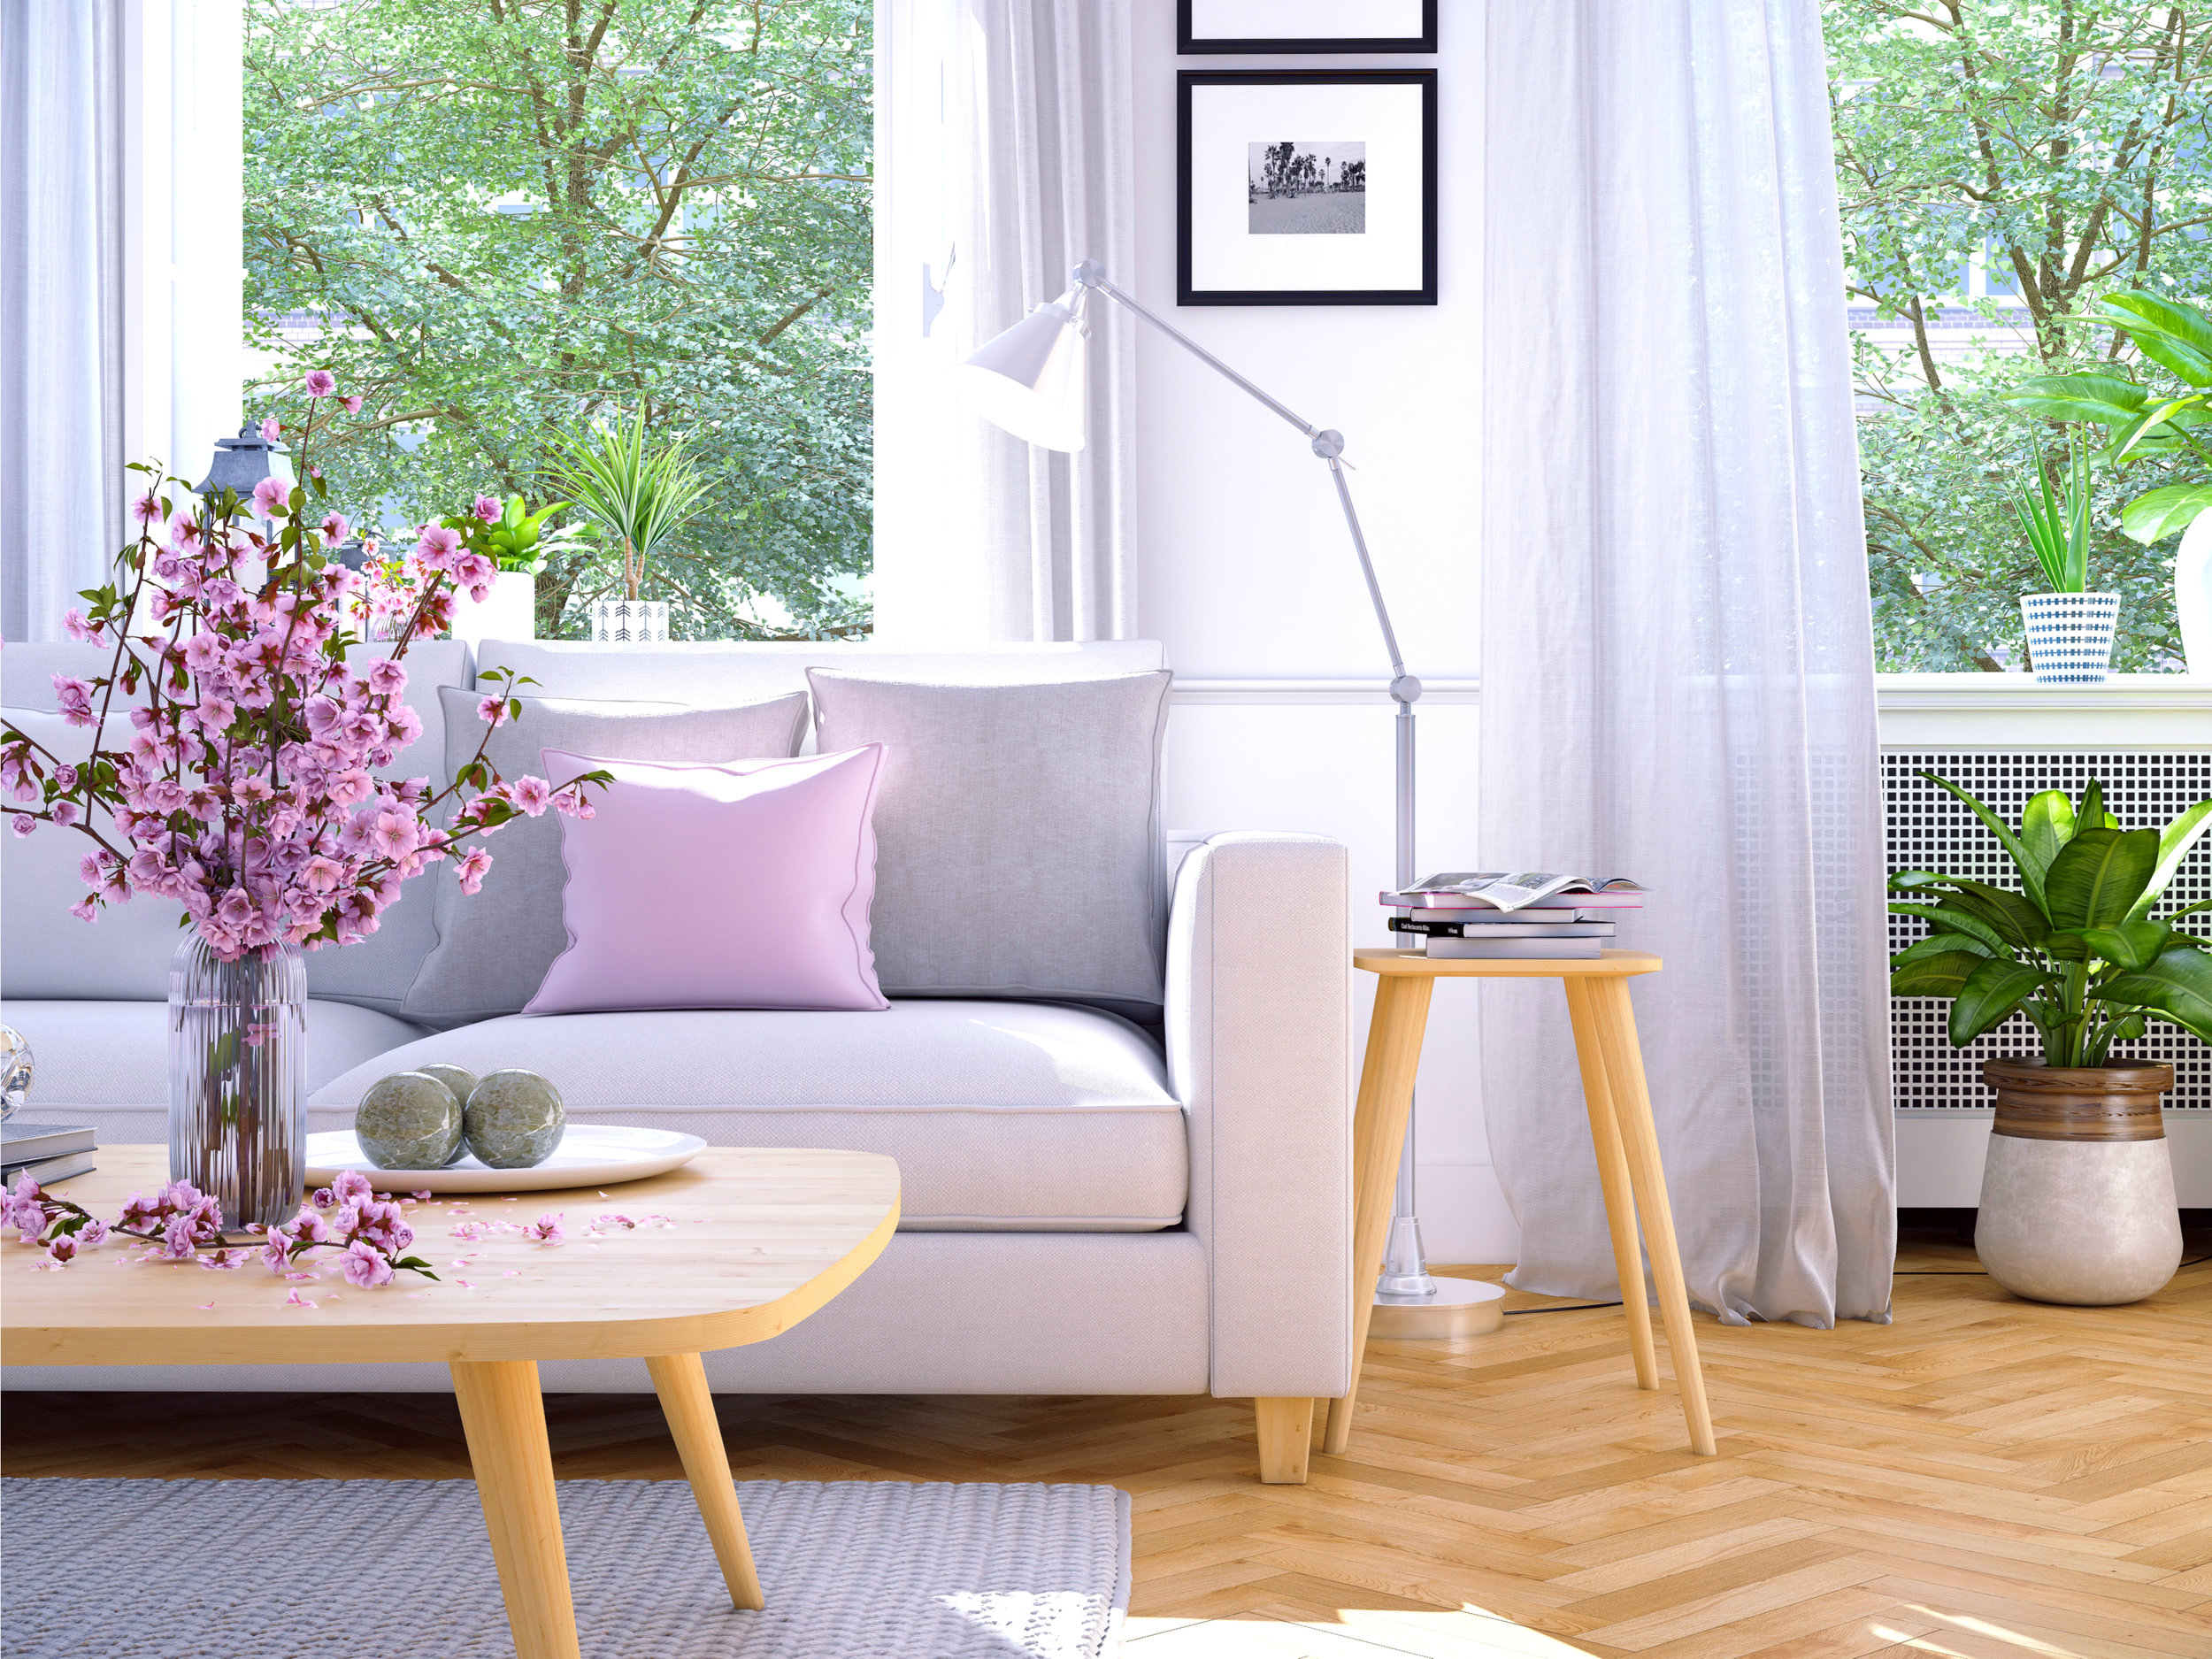 light and lovely summer decor - Pastels, Seasonal Blooms and Plants create a naturally bright and inviting space.